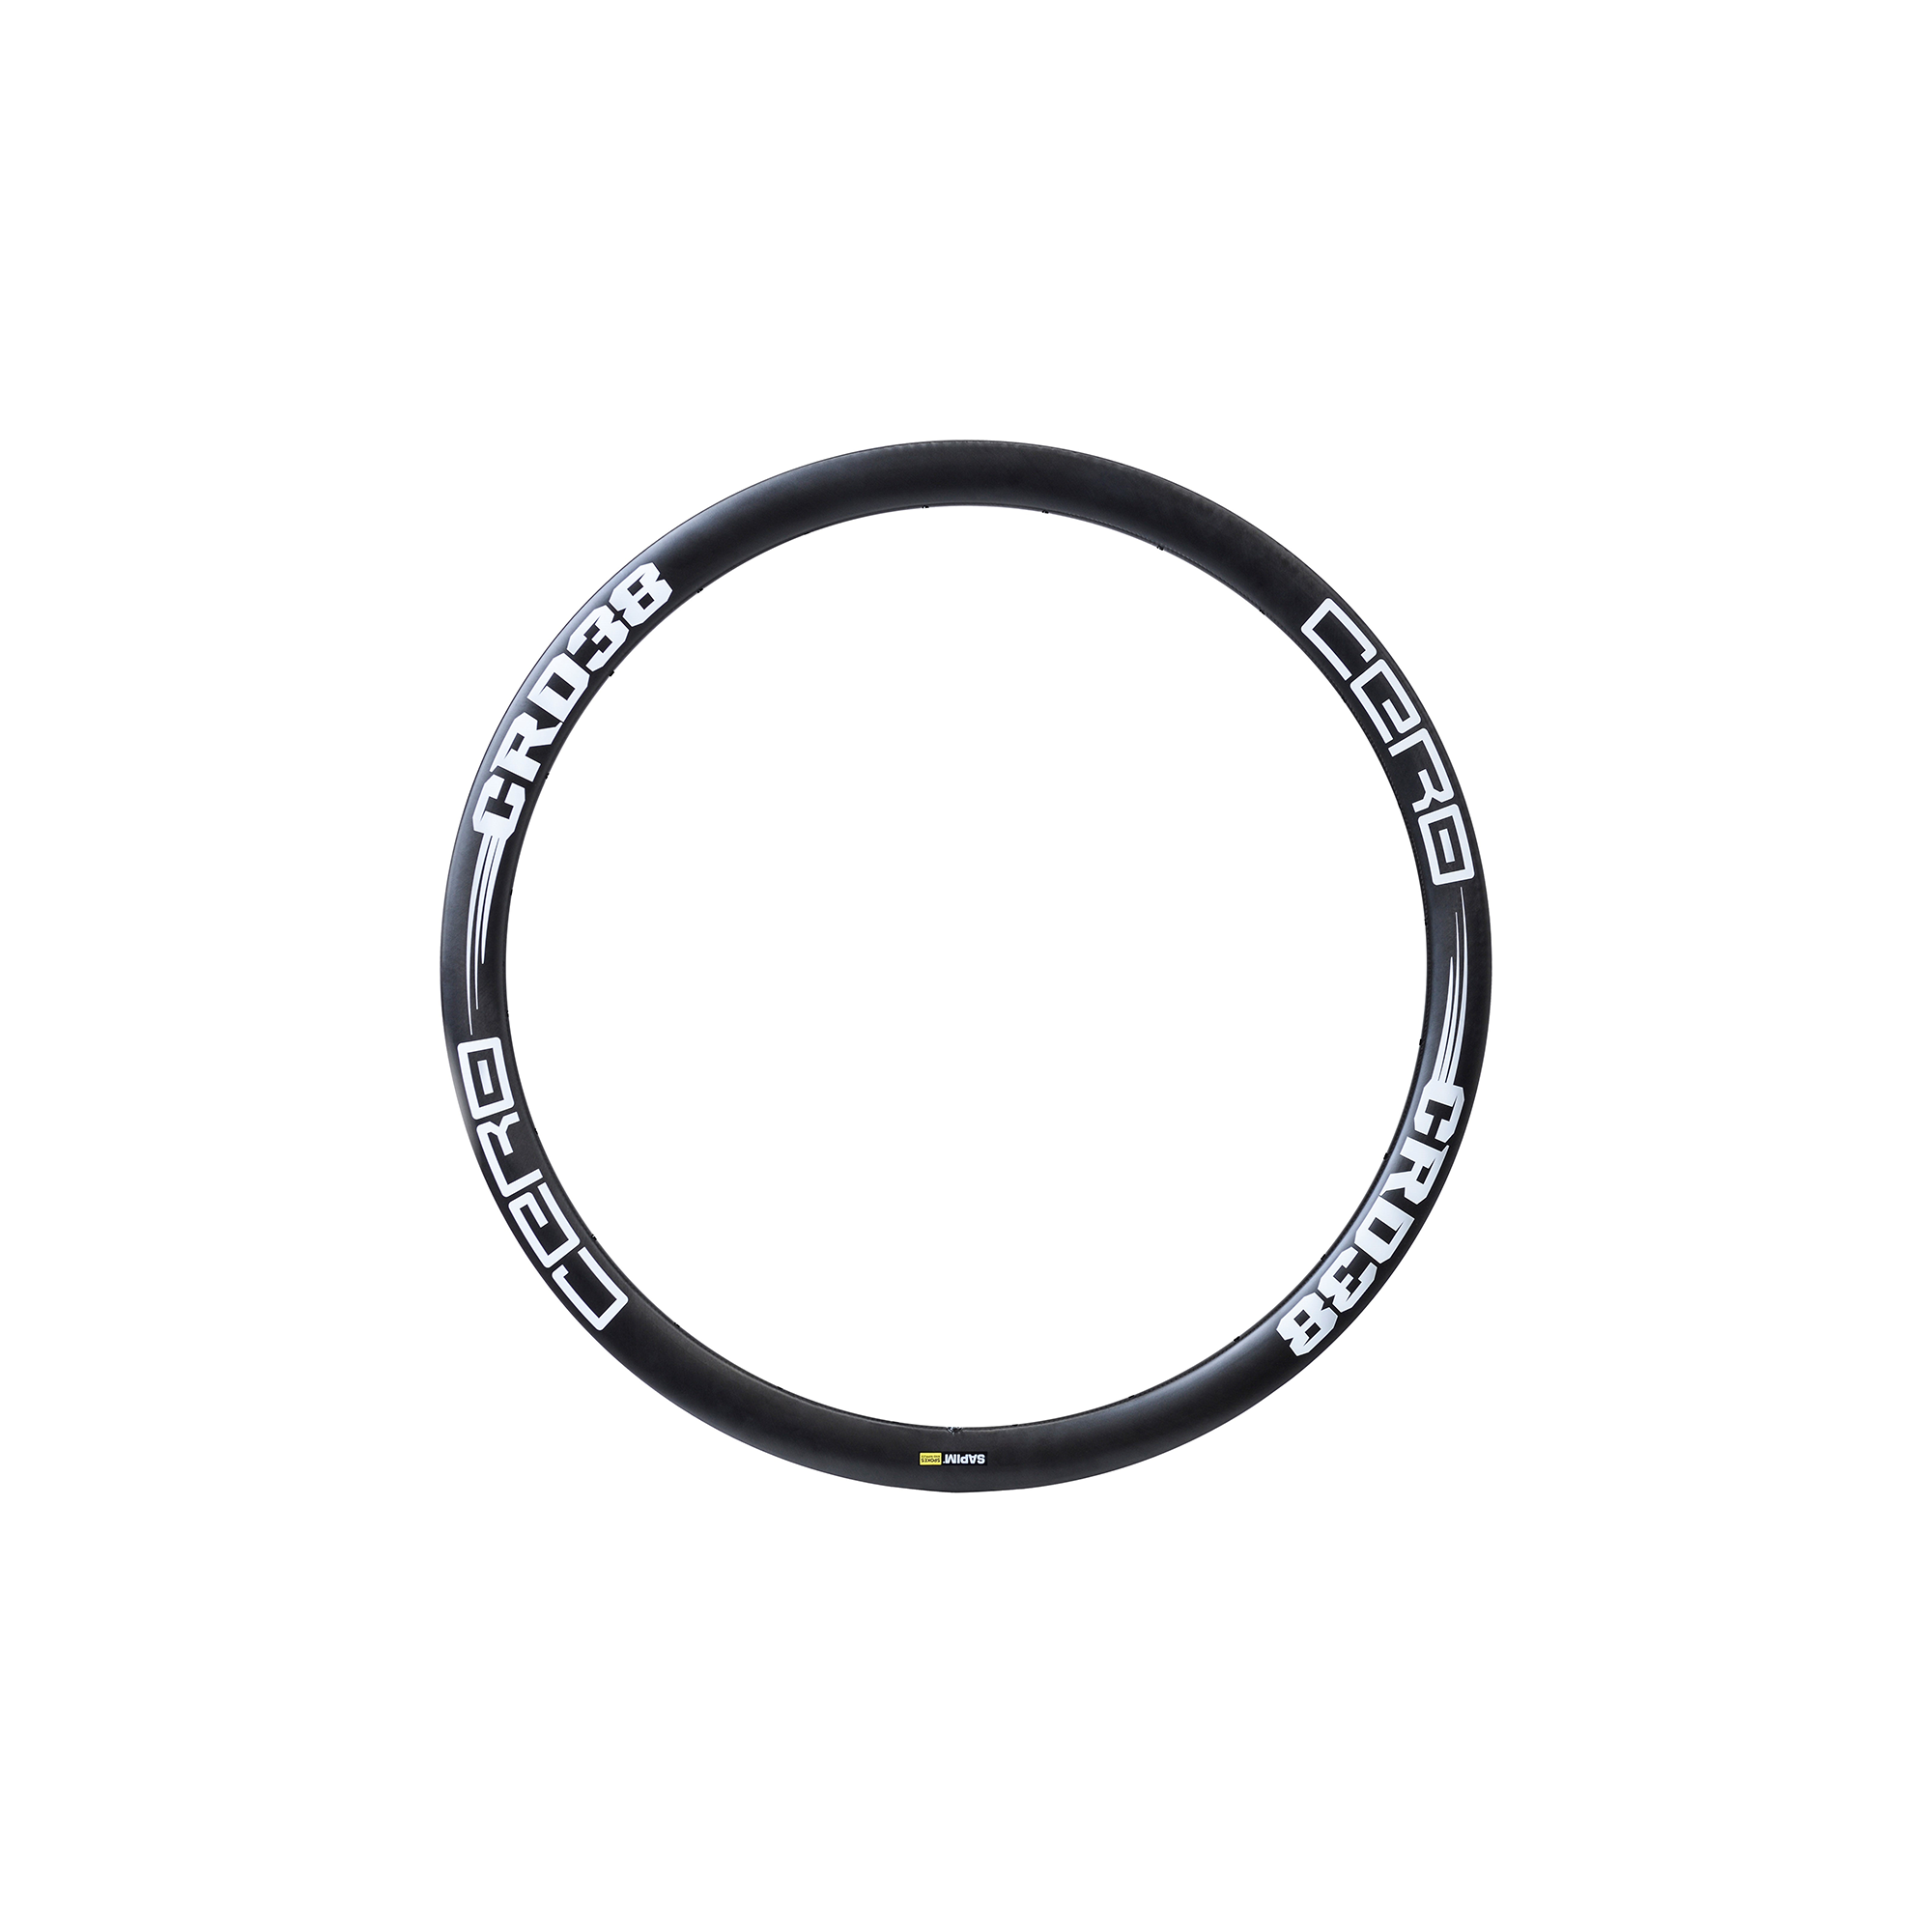 Cero CRD38 Carbon Disc Brake Rim